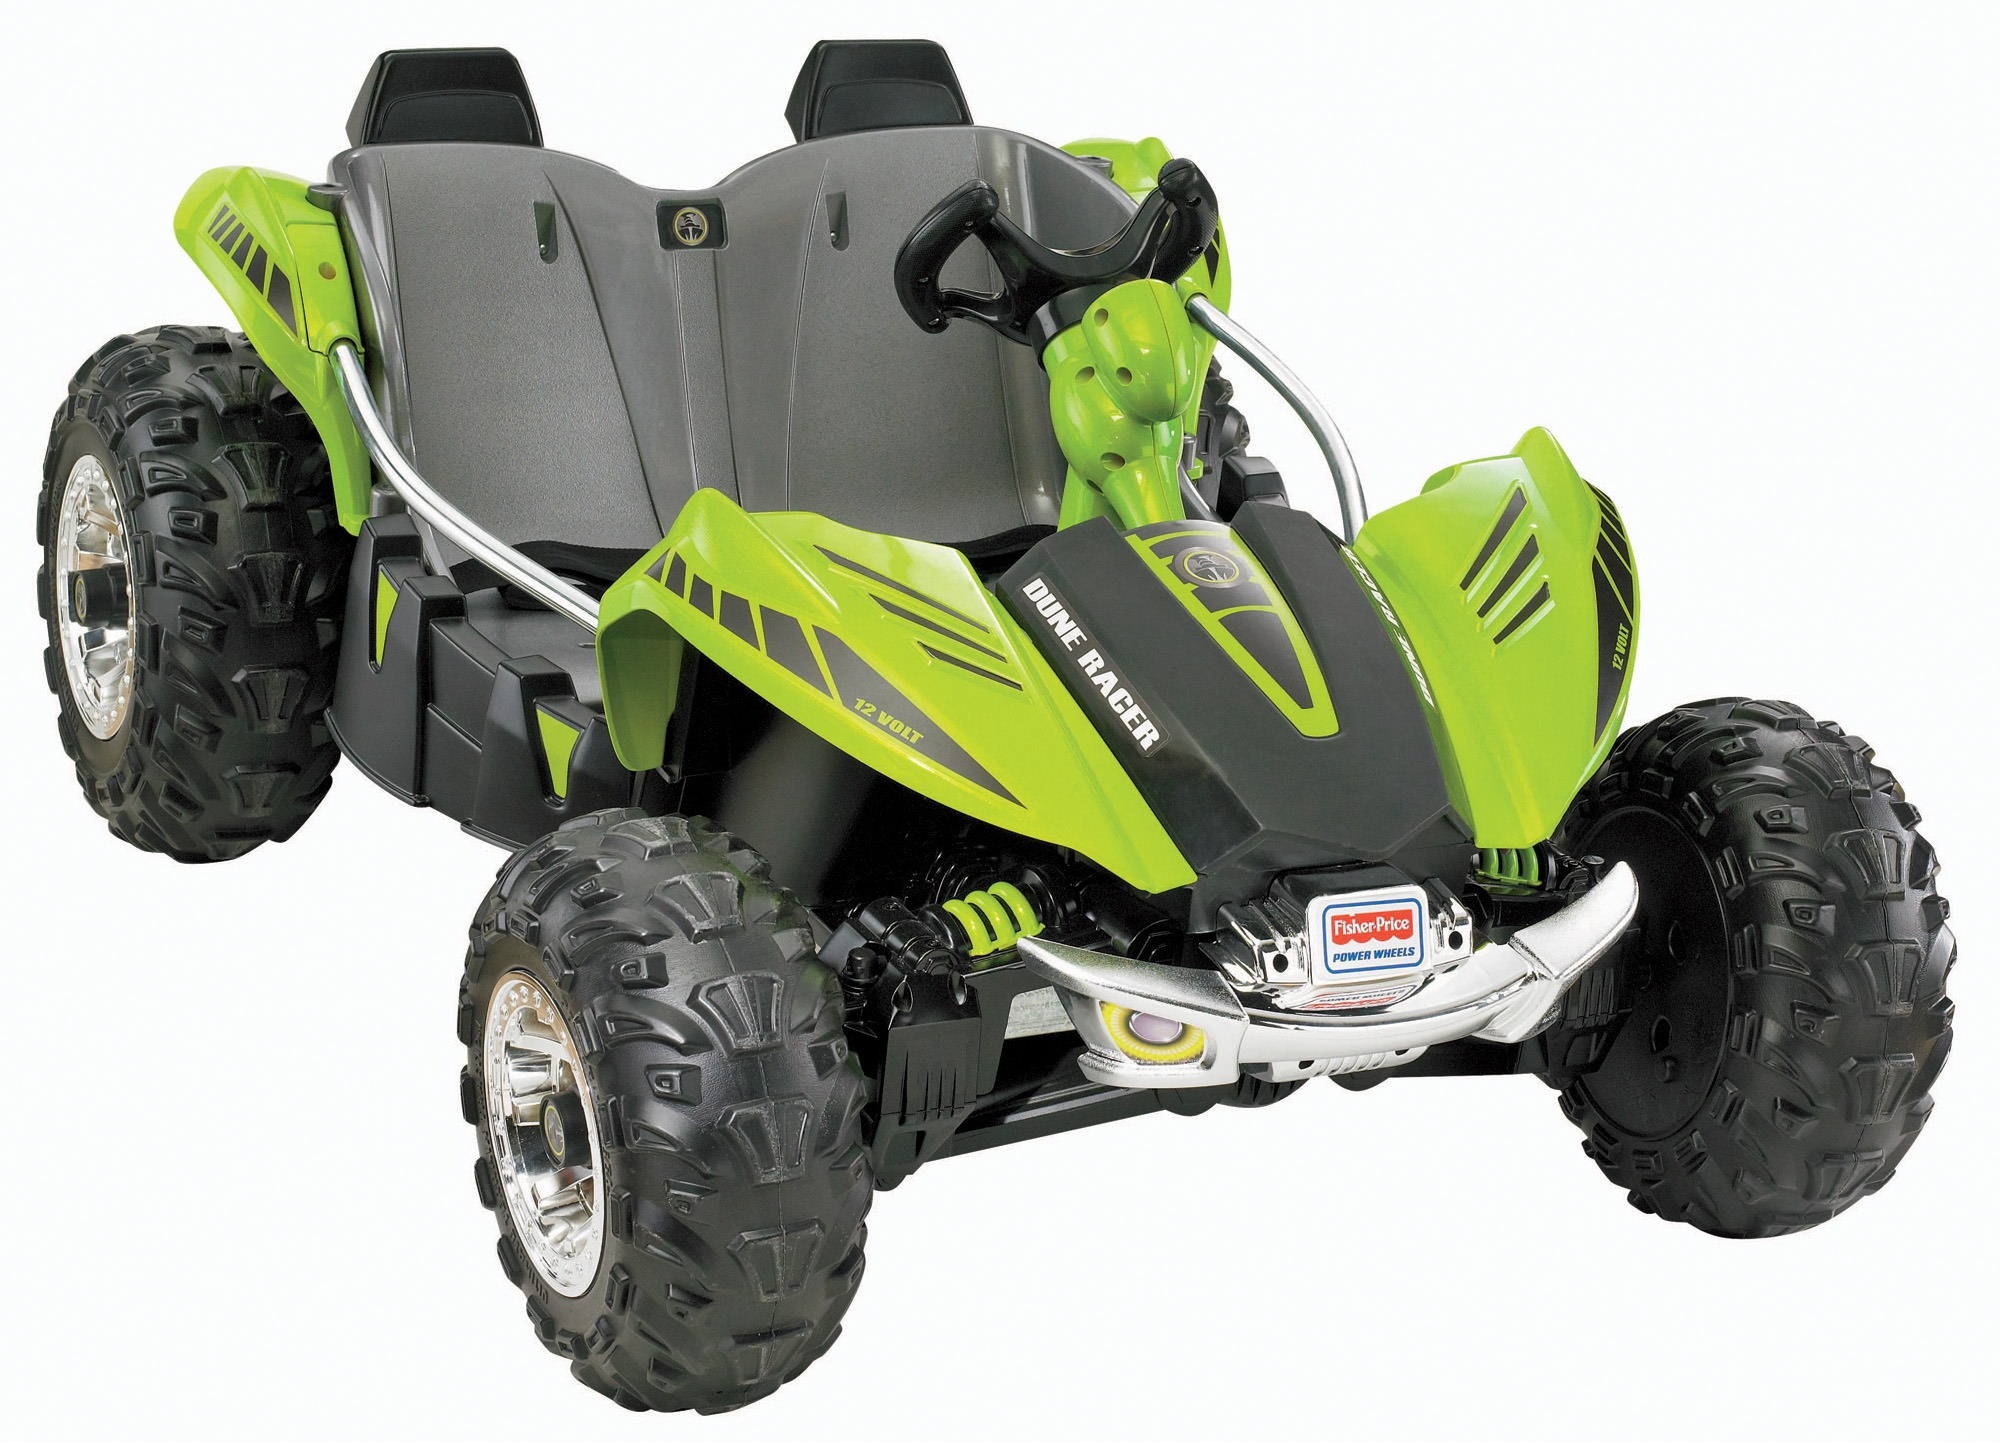 Power Wheels Dune Racer 12 Volt Battery Powered Ride on Walmart